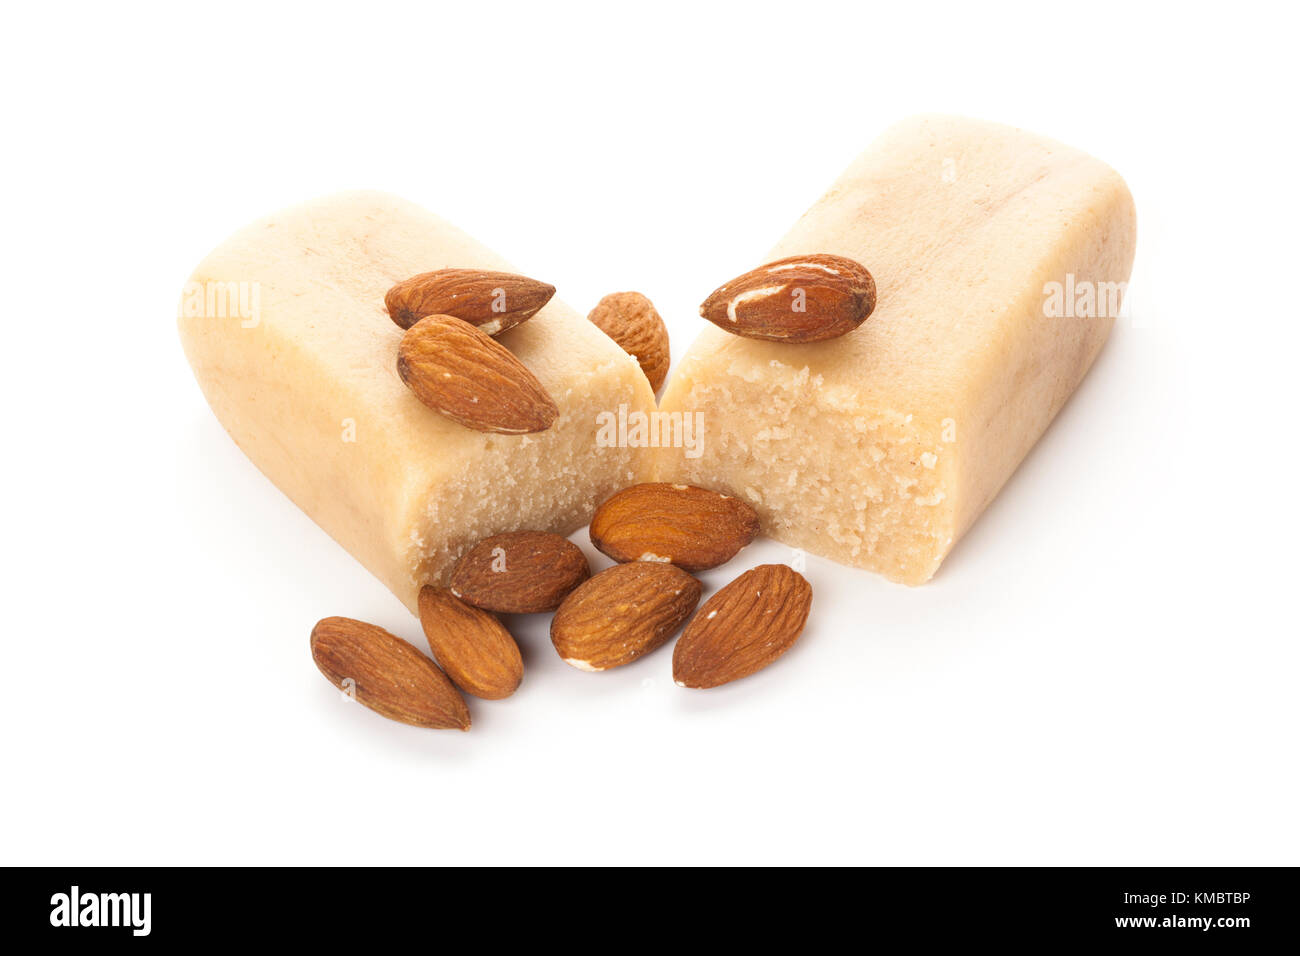 block of marzipan with almonds isolated on white background Stock Photo